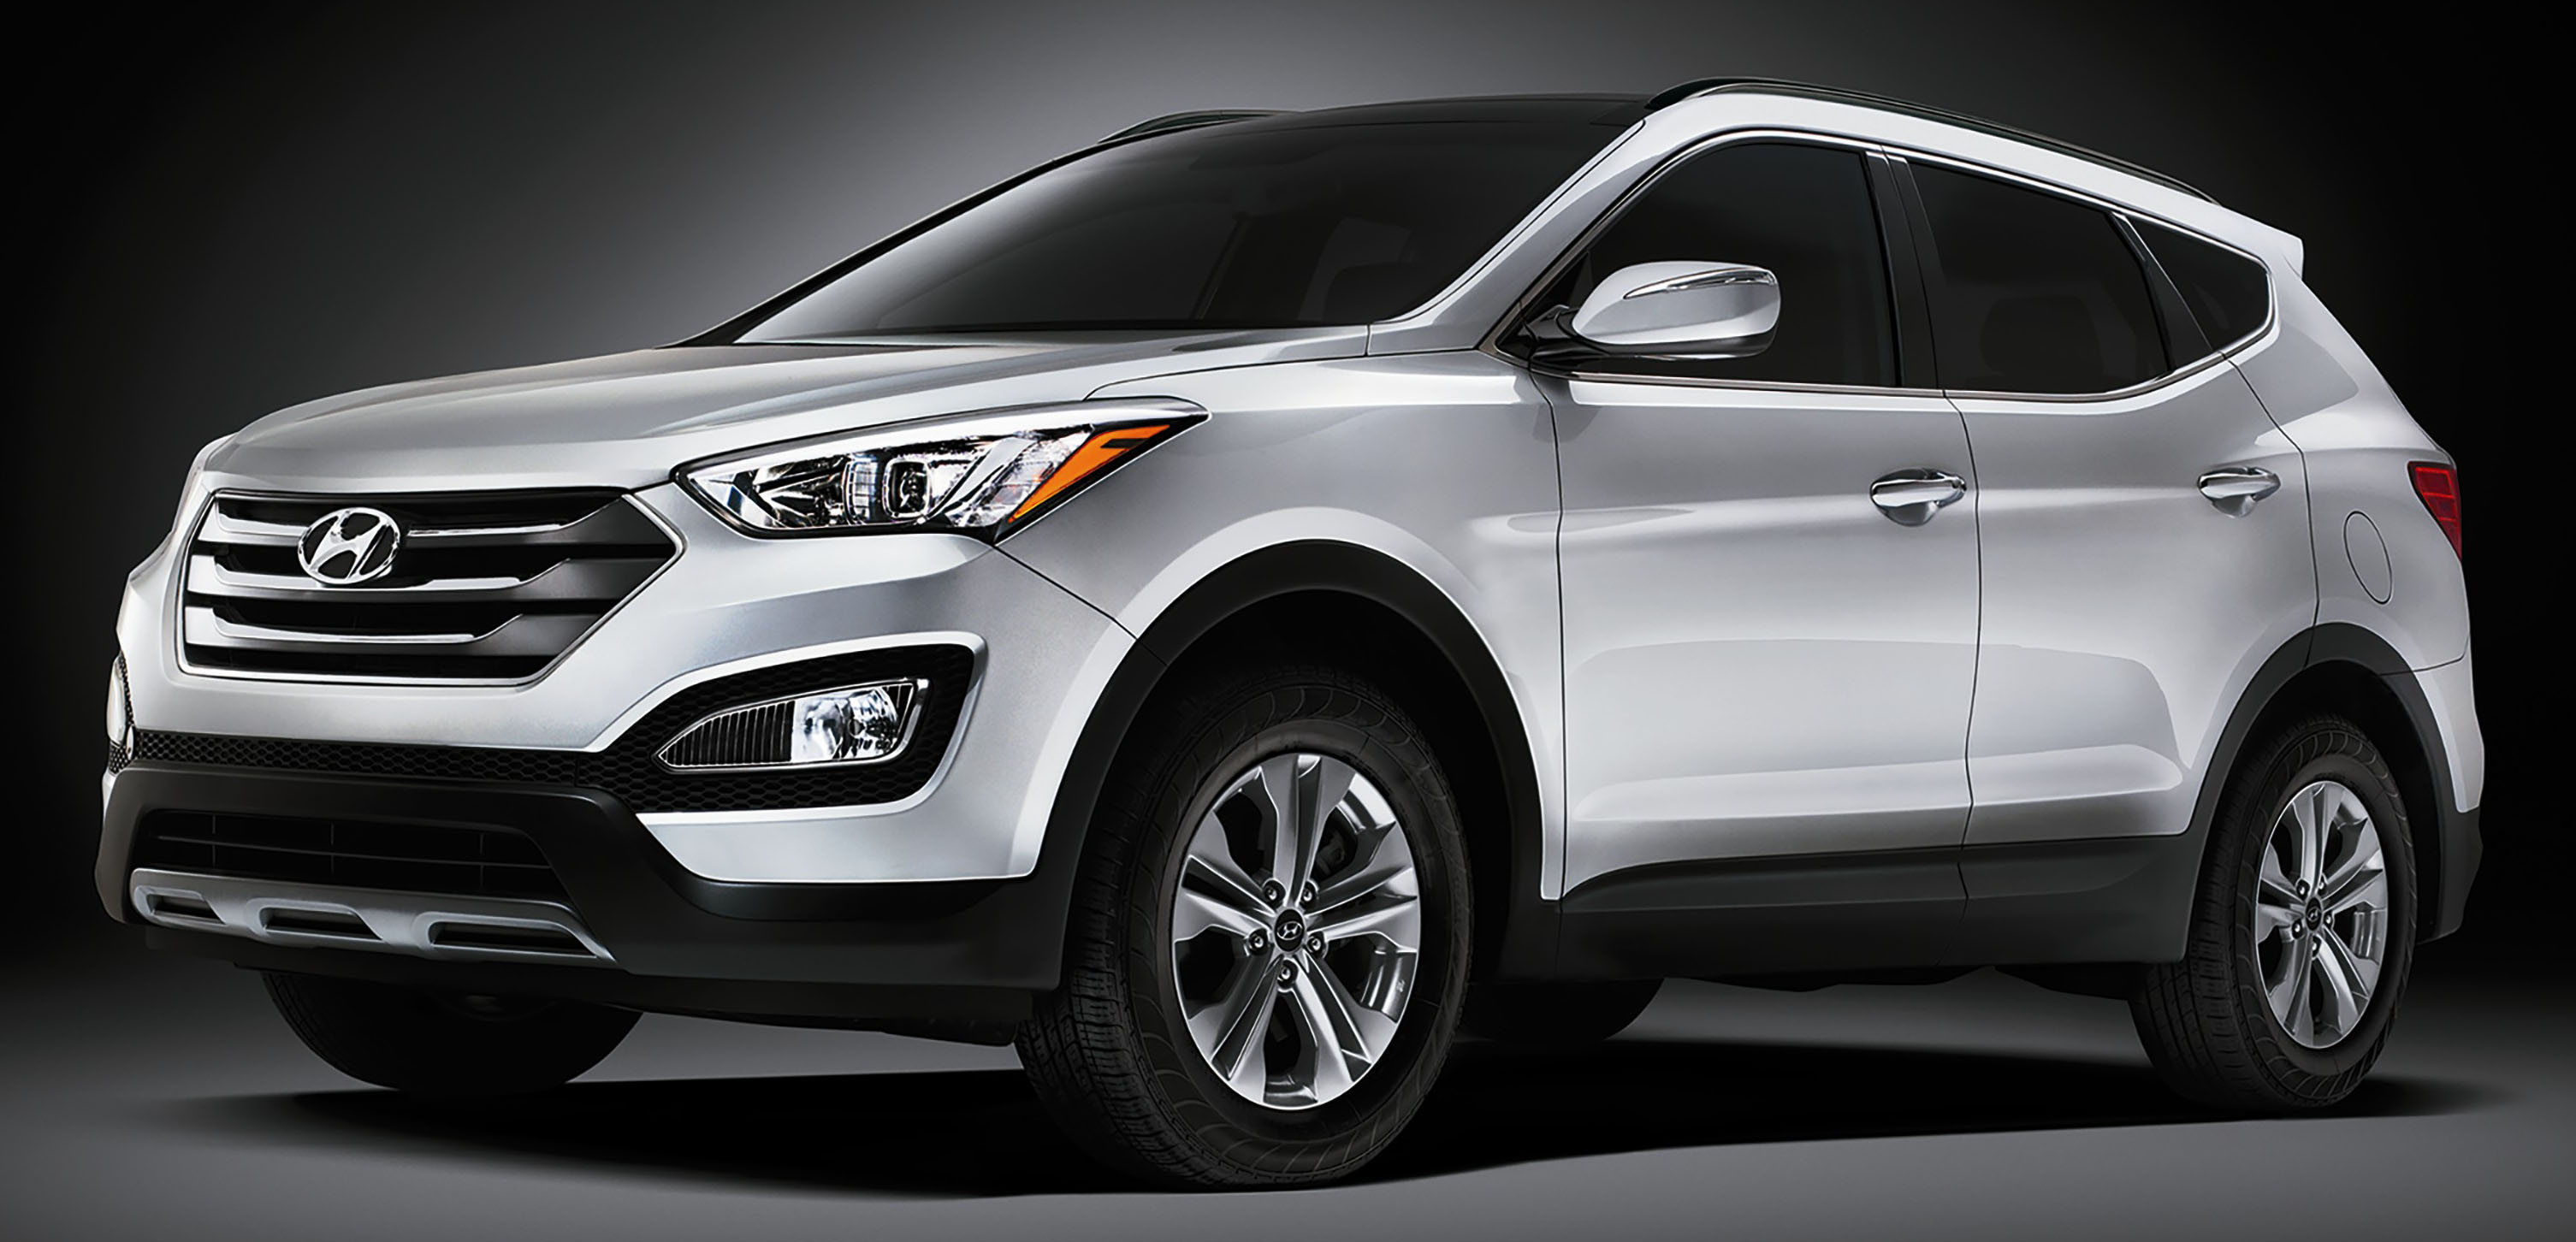 Hyundai Santa Fe Gets Some Updates For 2015 In The Us